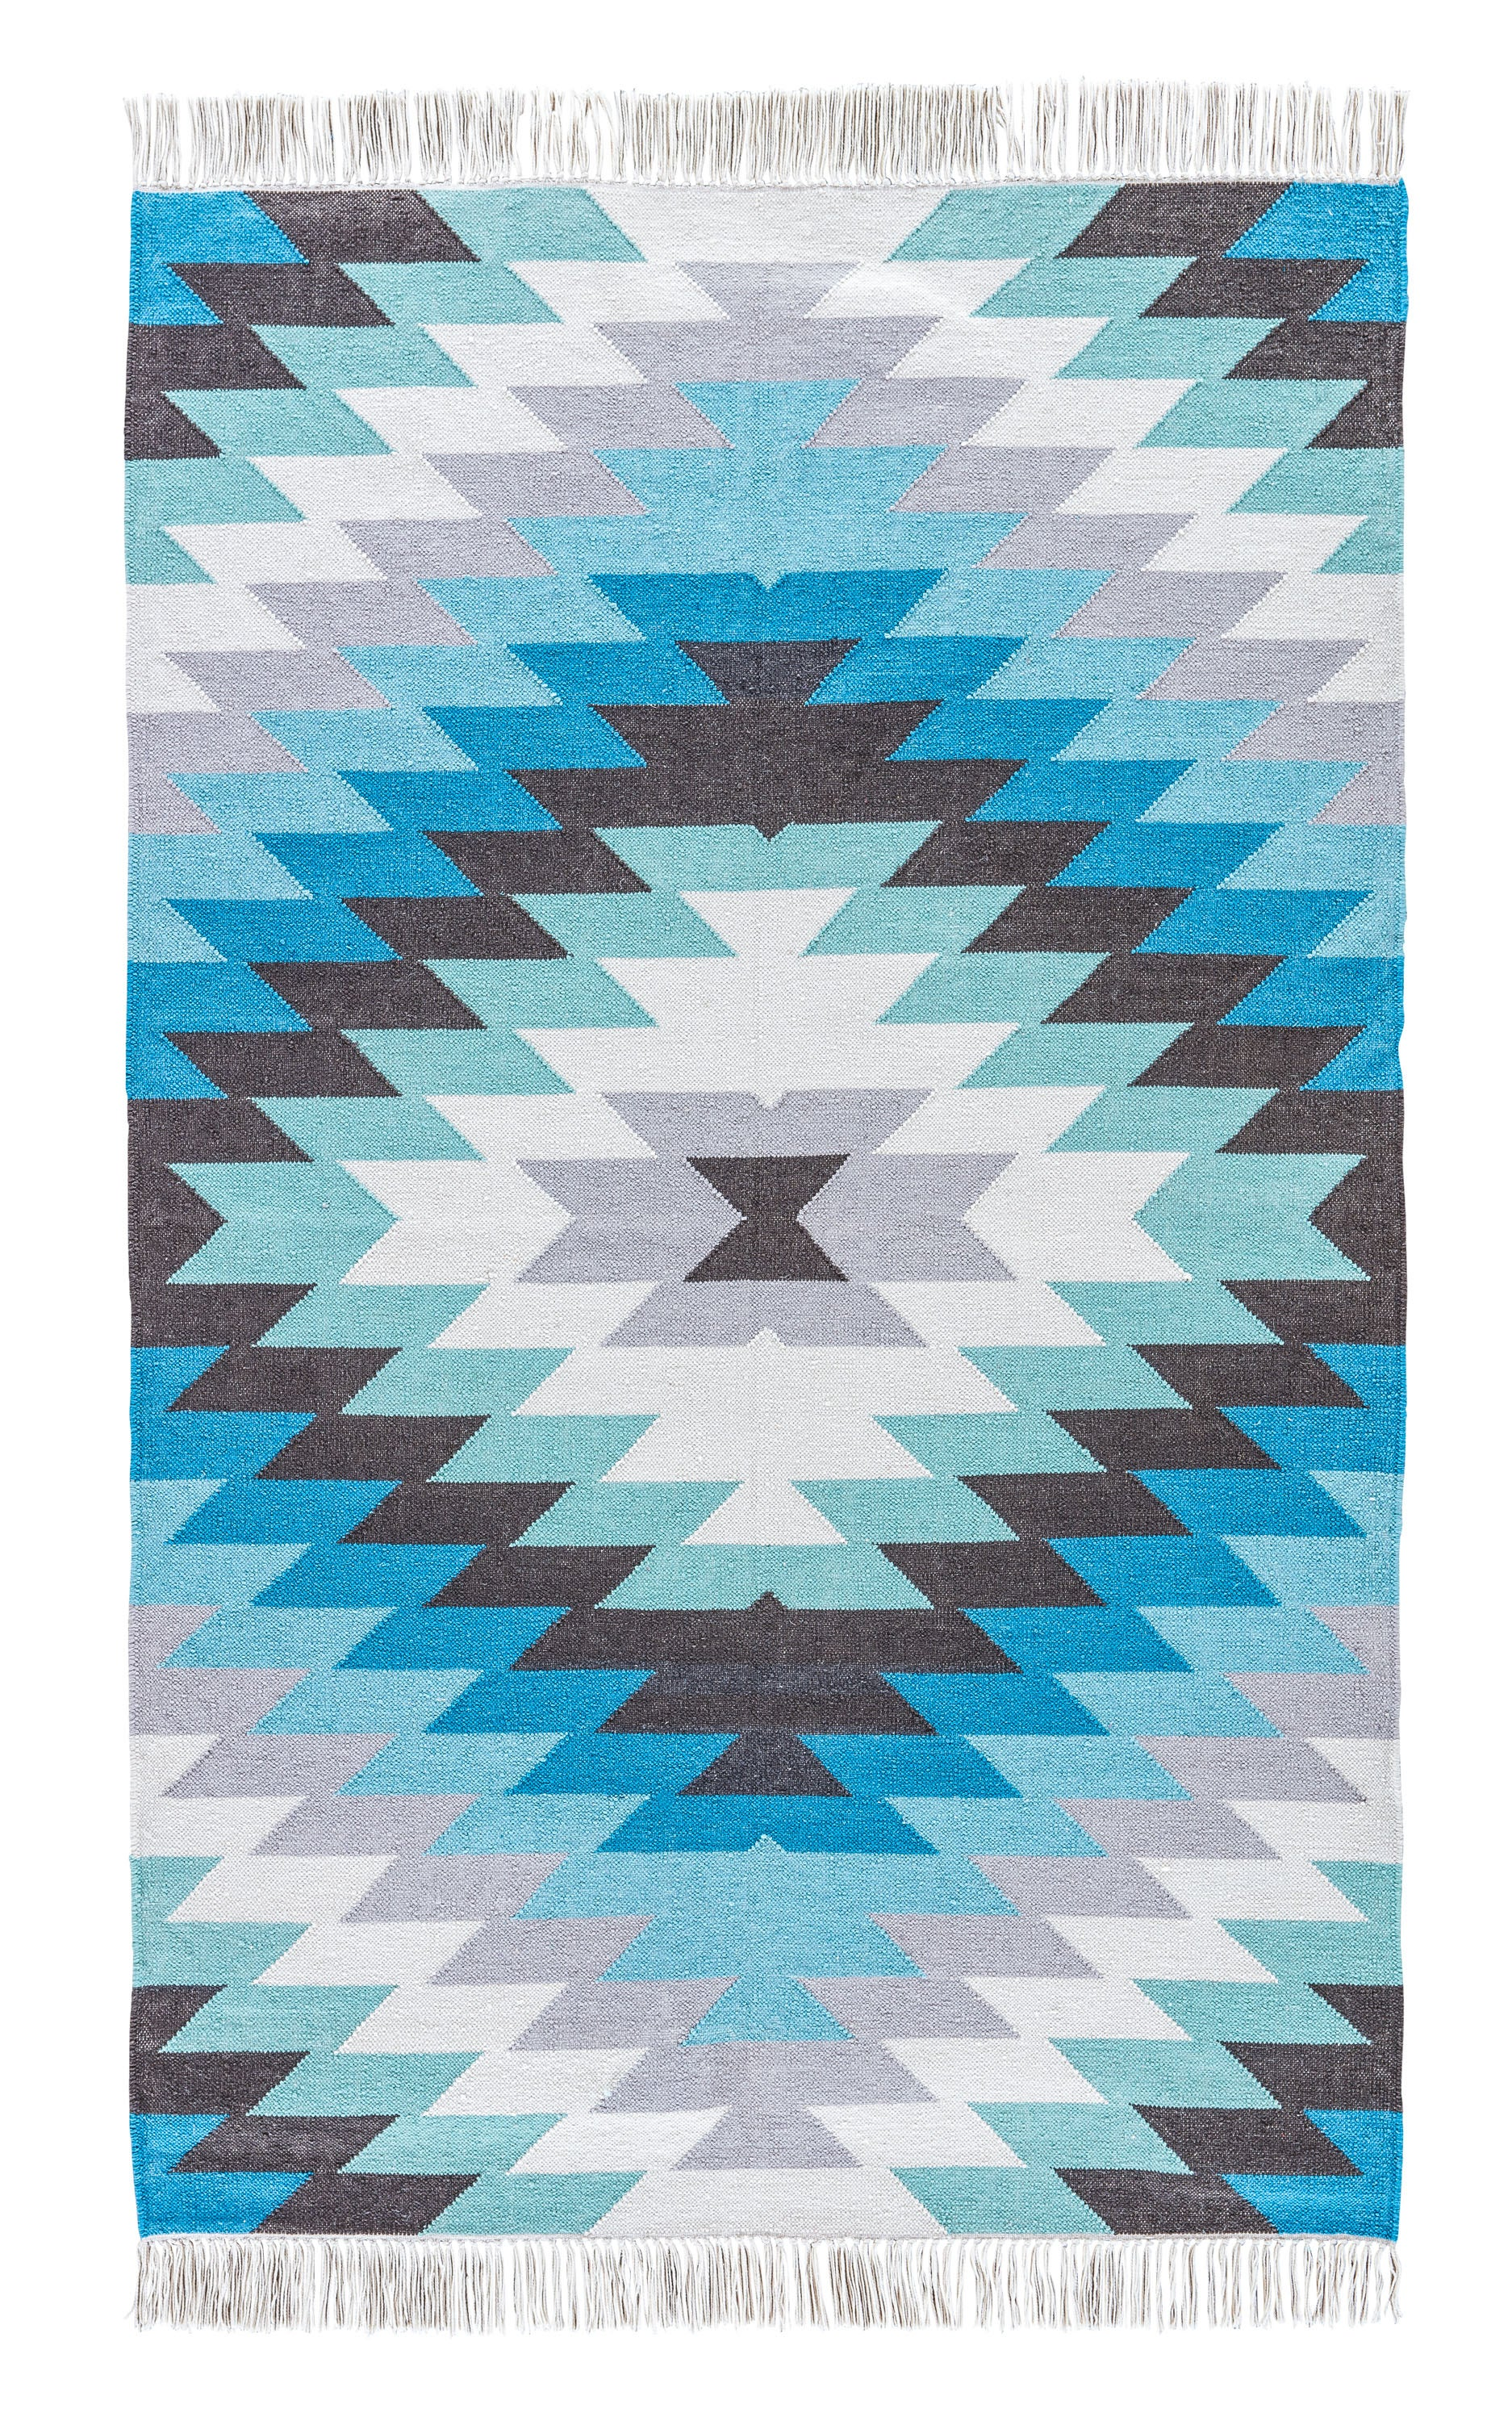 Rectangle Blue Geometric Hand Woven Synthetics Southwestern recommended for Kitchen, Bedroom, Bathroom, Outdoor, Dining Room, Office, Hallway, Living Room